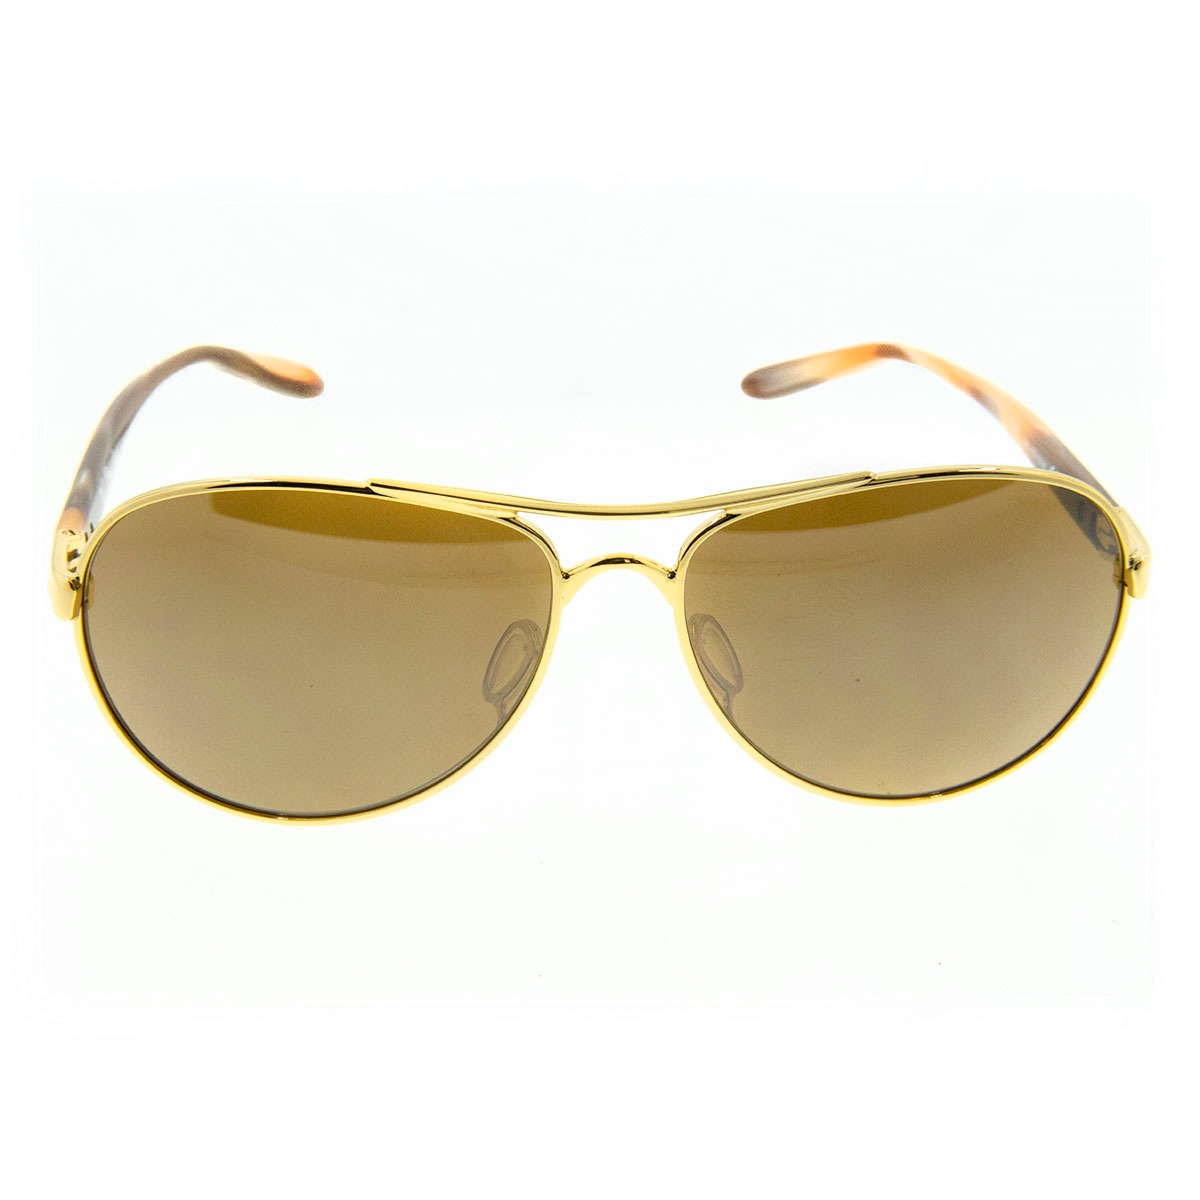 6eef87f317 Details about New Authentic Oakley Tie Breaker Sunglasses Gold with  Tungsten Lenses 0004108